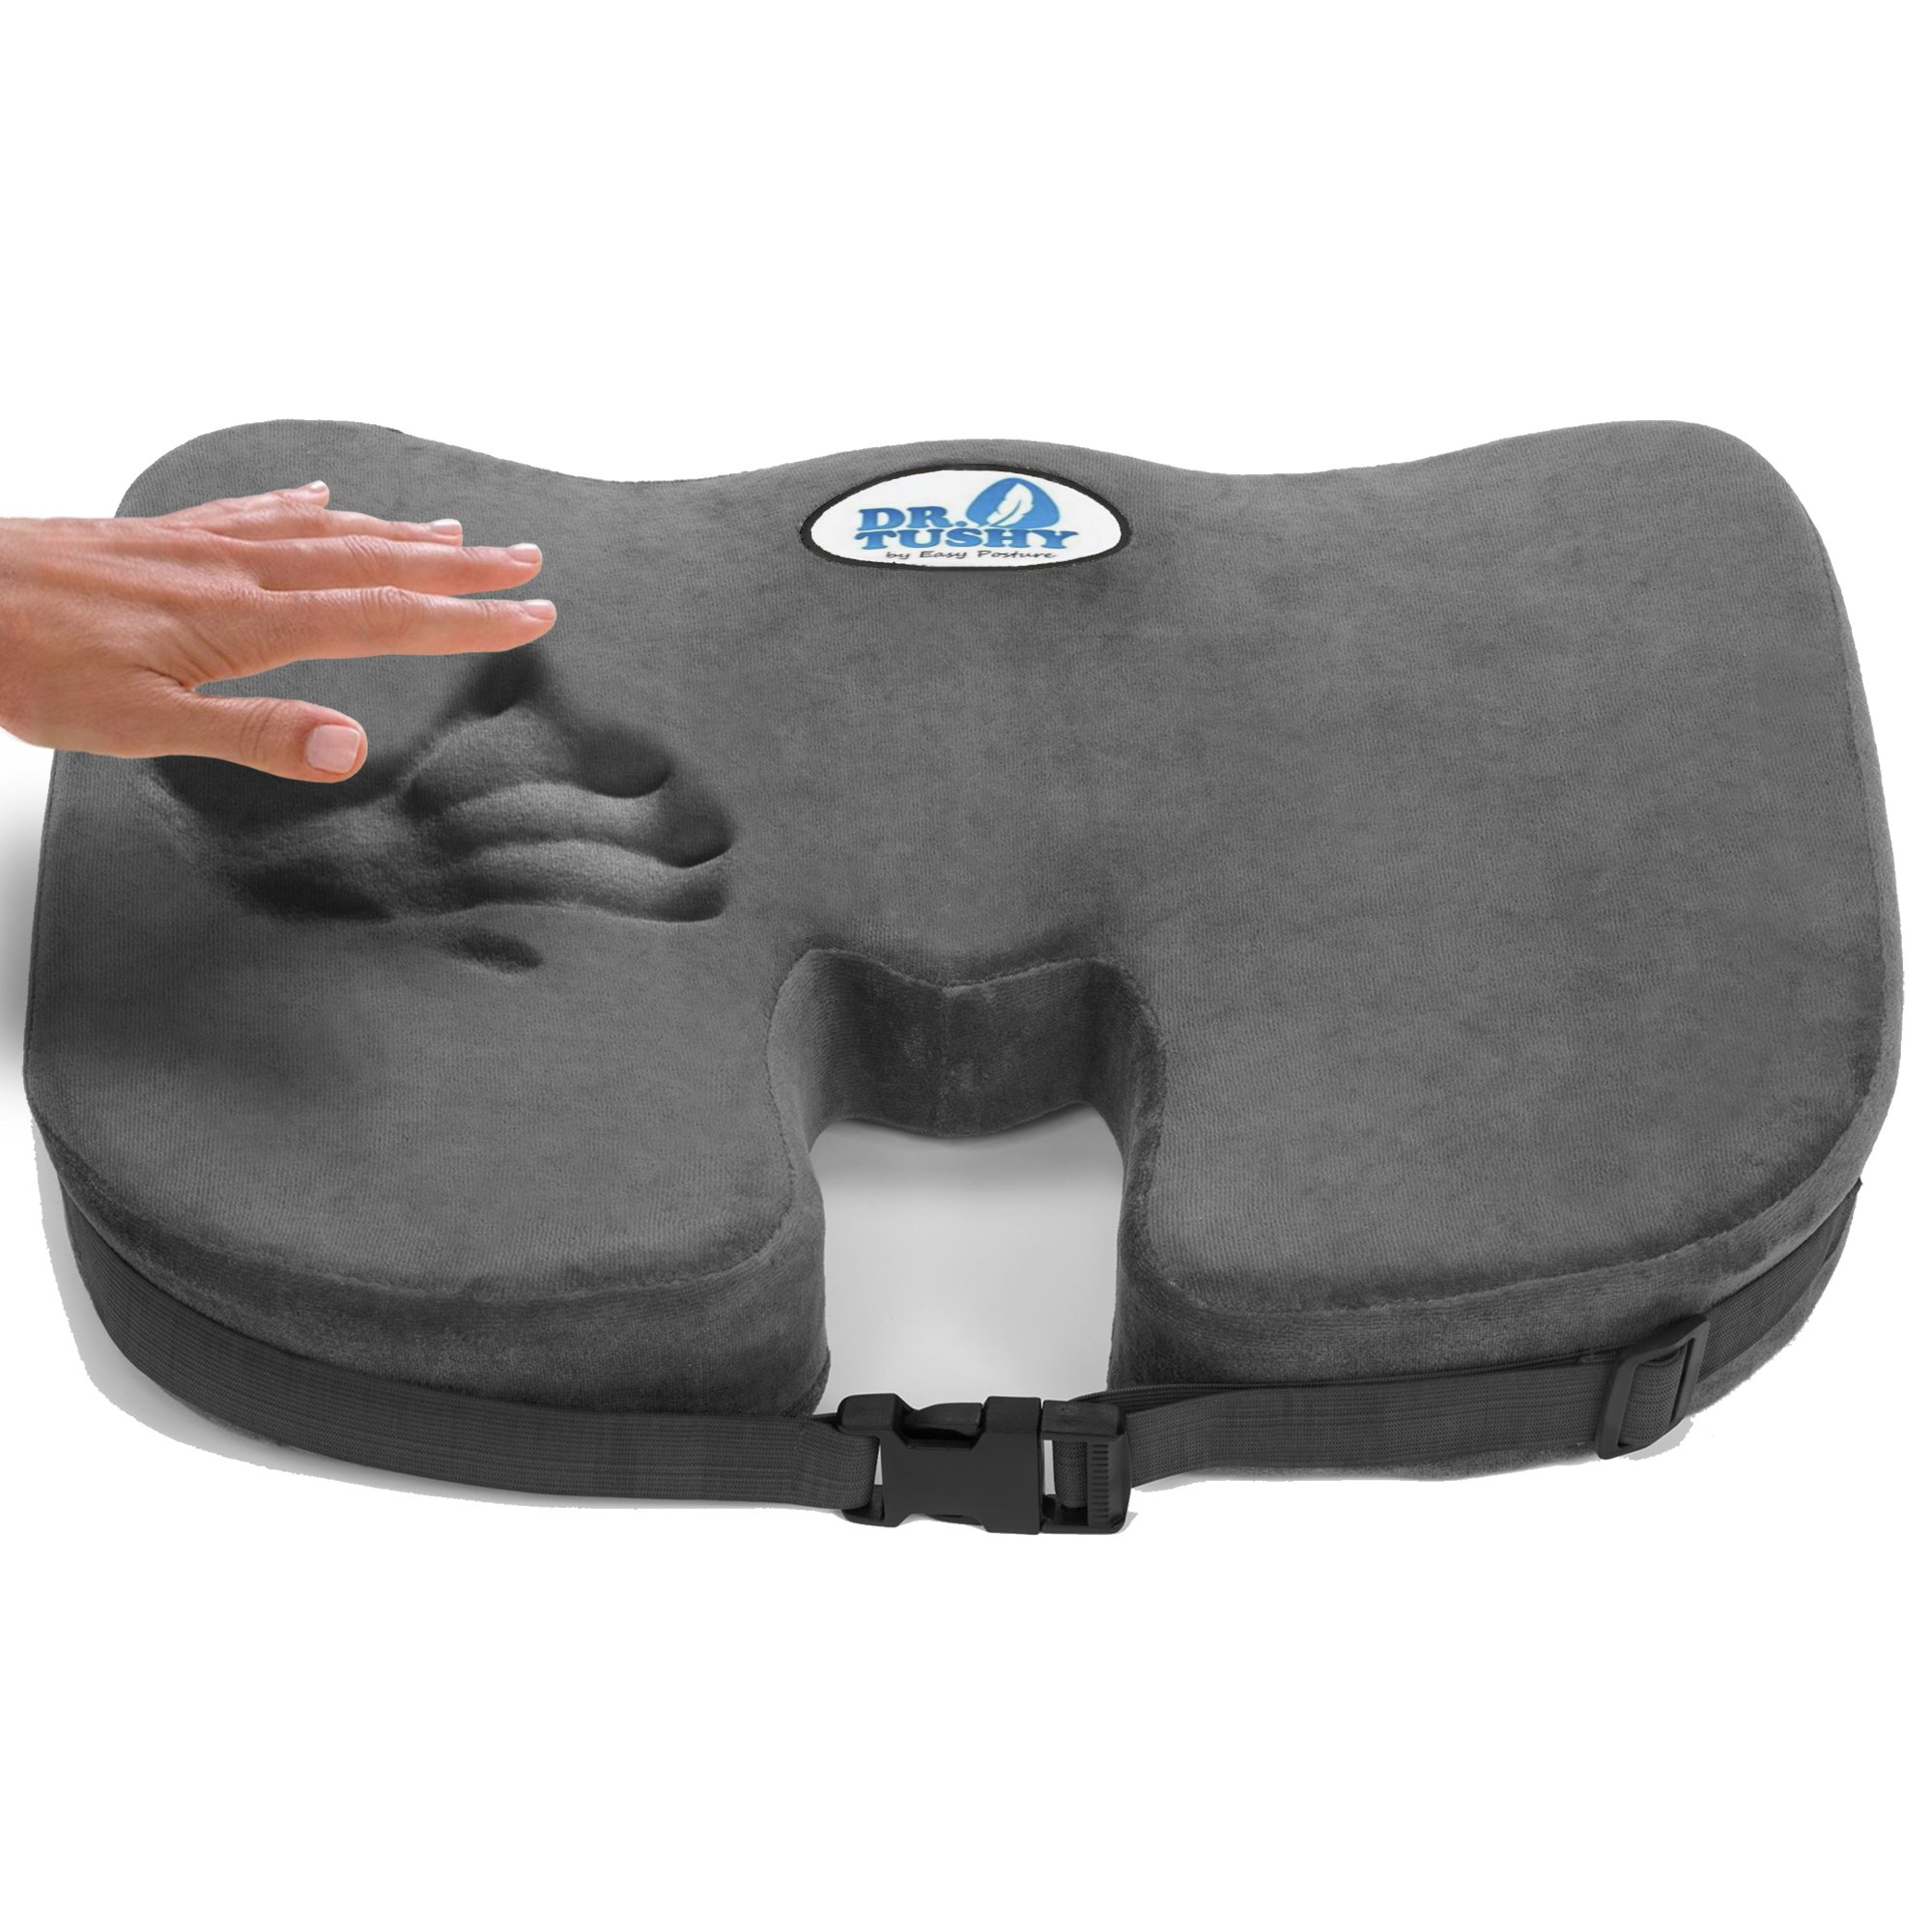 Dr Tushy 100 Memory Foam Seat Cushion With Orthopedic Design Comfort To Help Relieve Pressure From Sciatica Coccyx Tailbone Back Pain